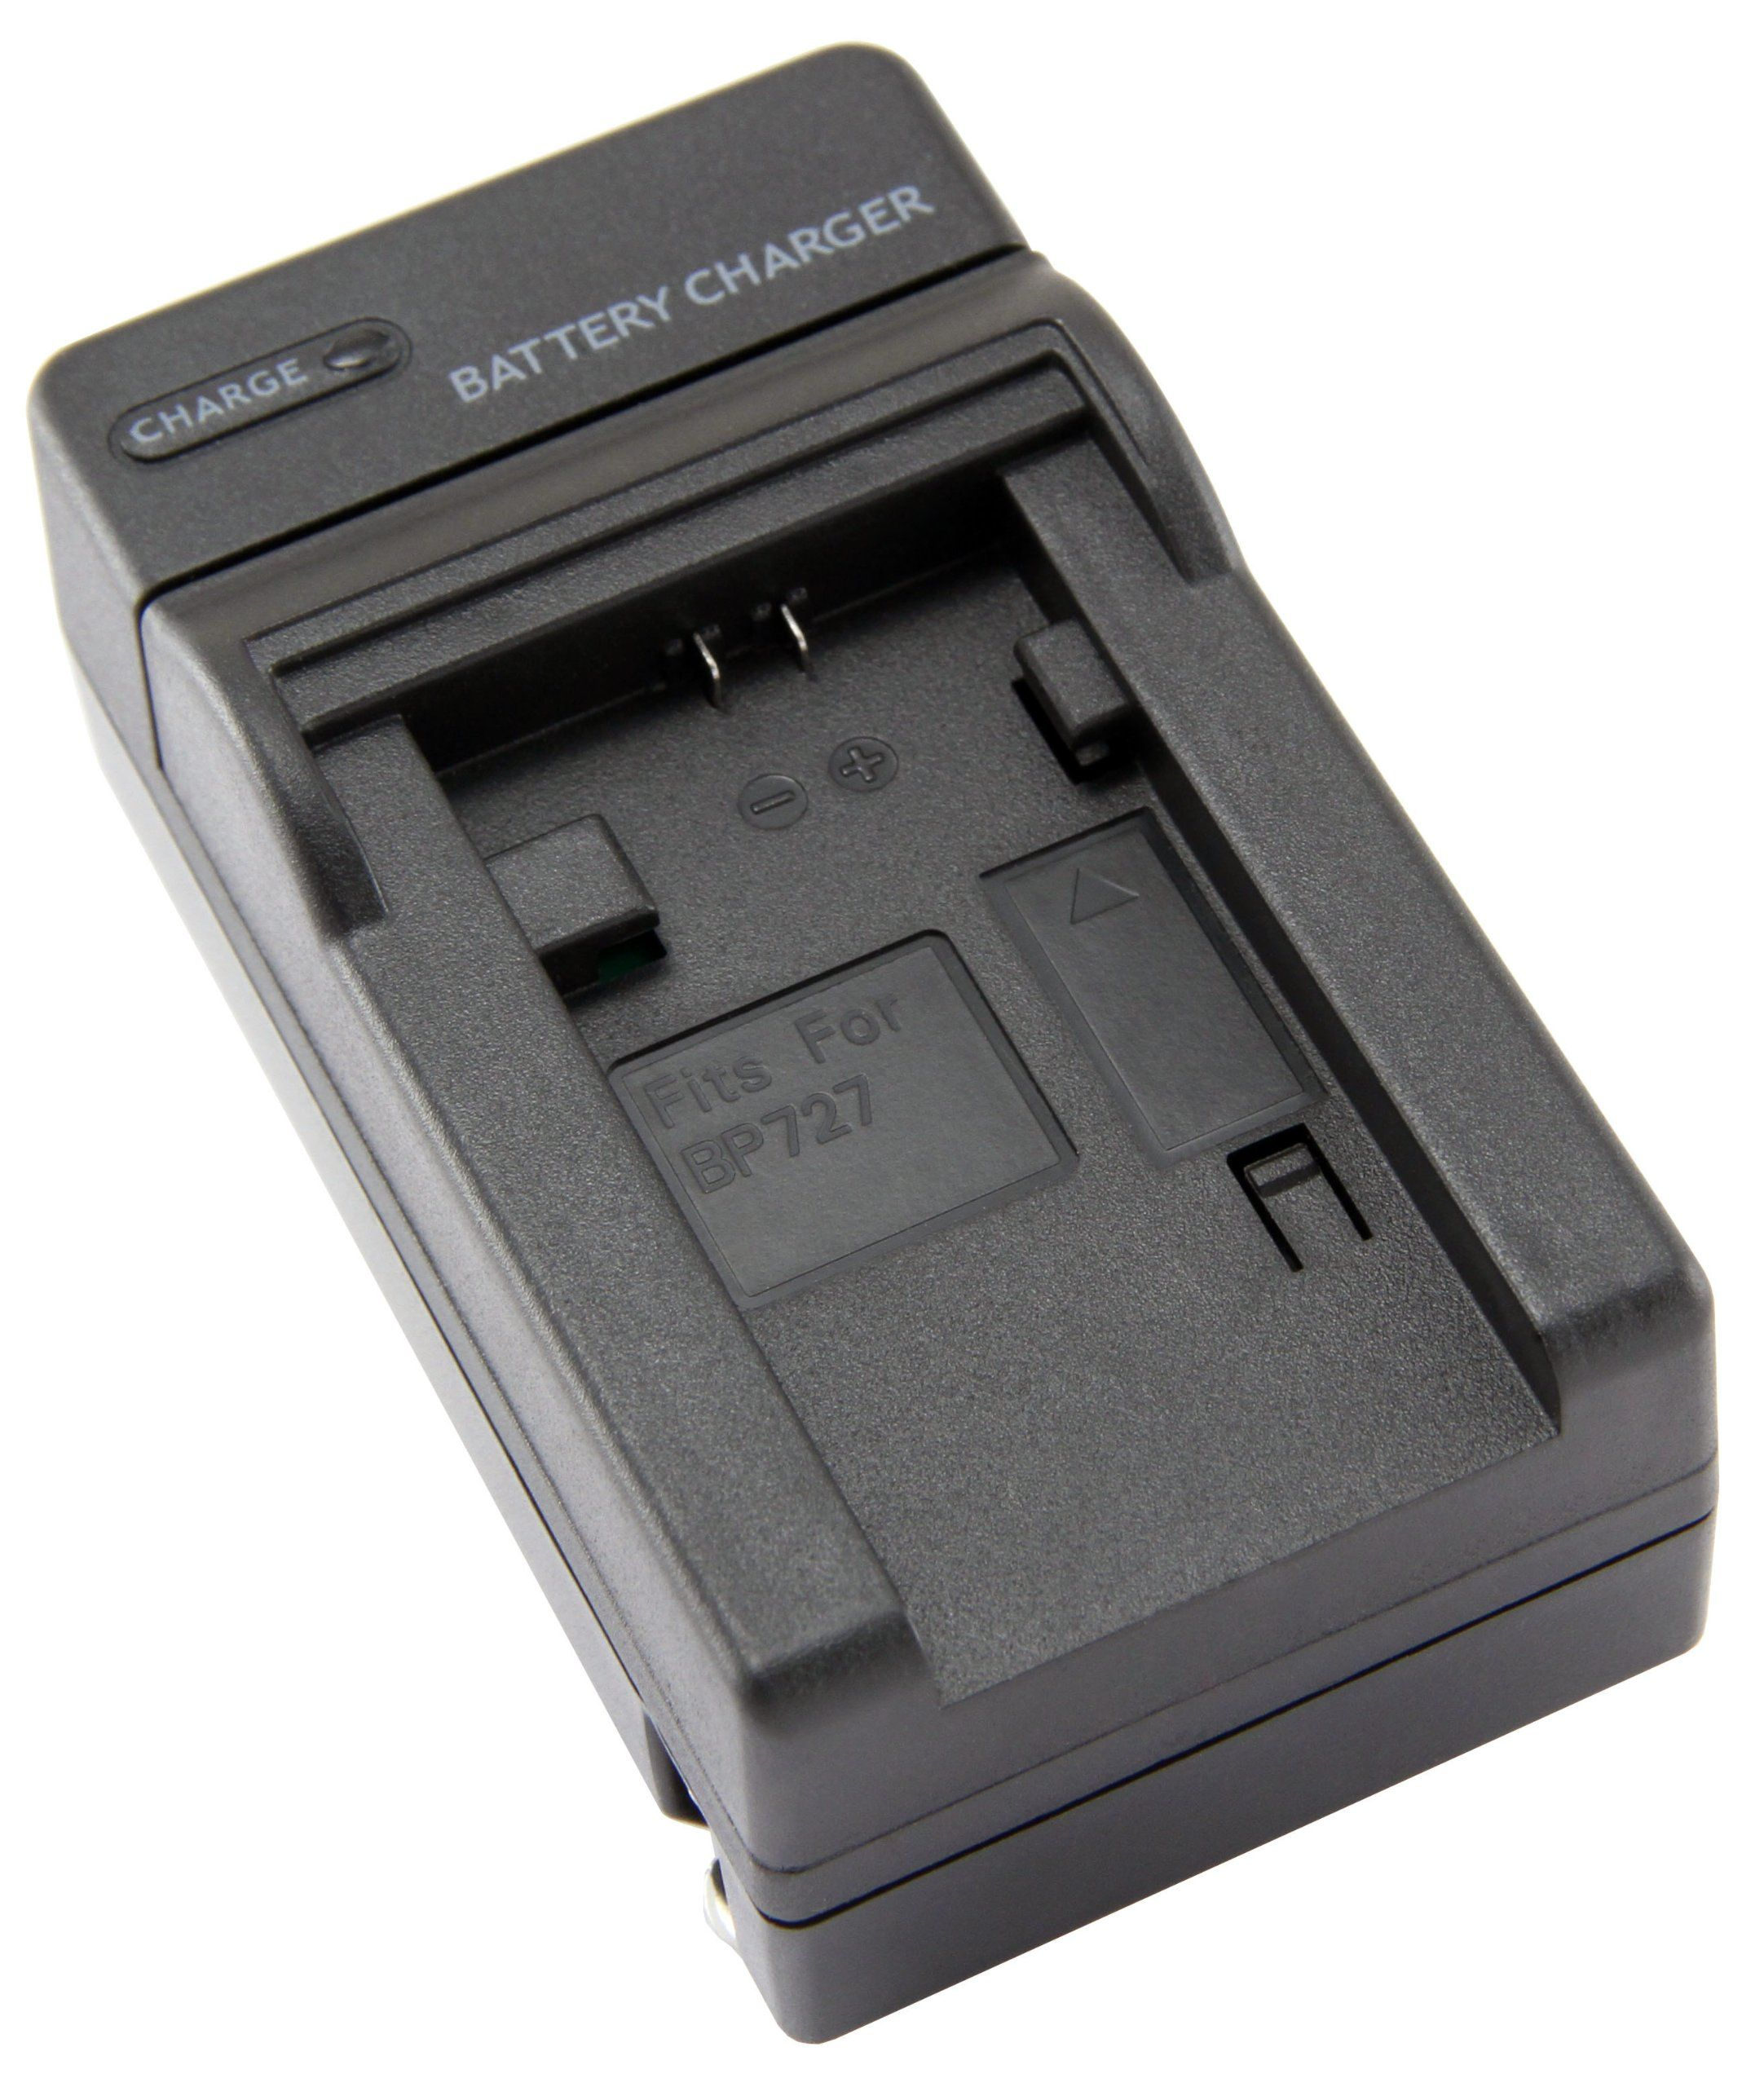 Battery Charger for Canon VIXIA HF R30 HF R32 HF R300 HD Camcorder